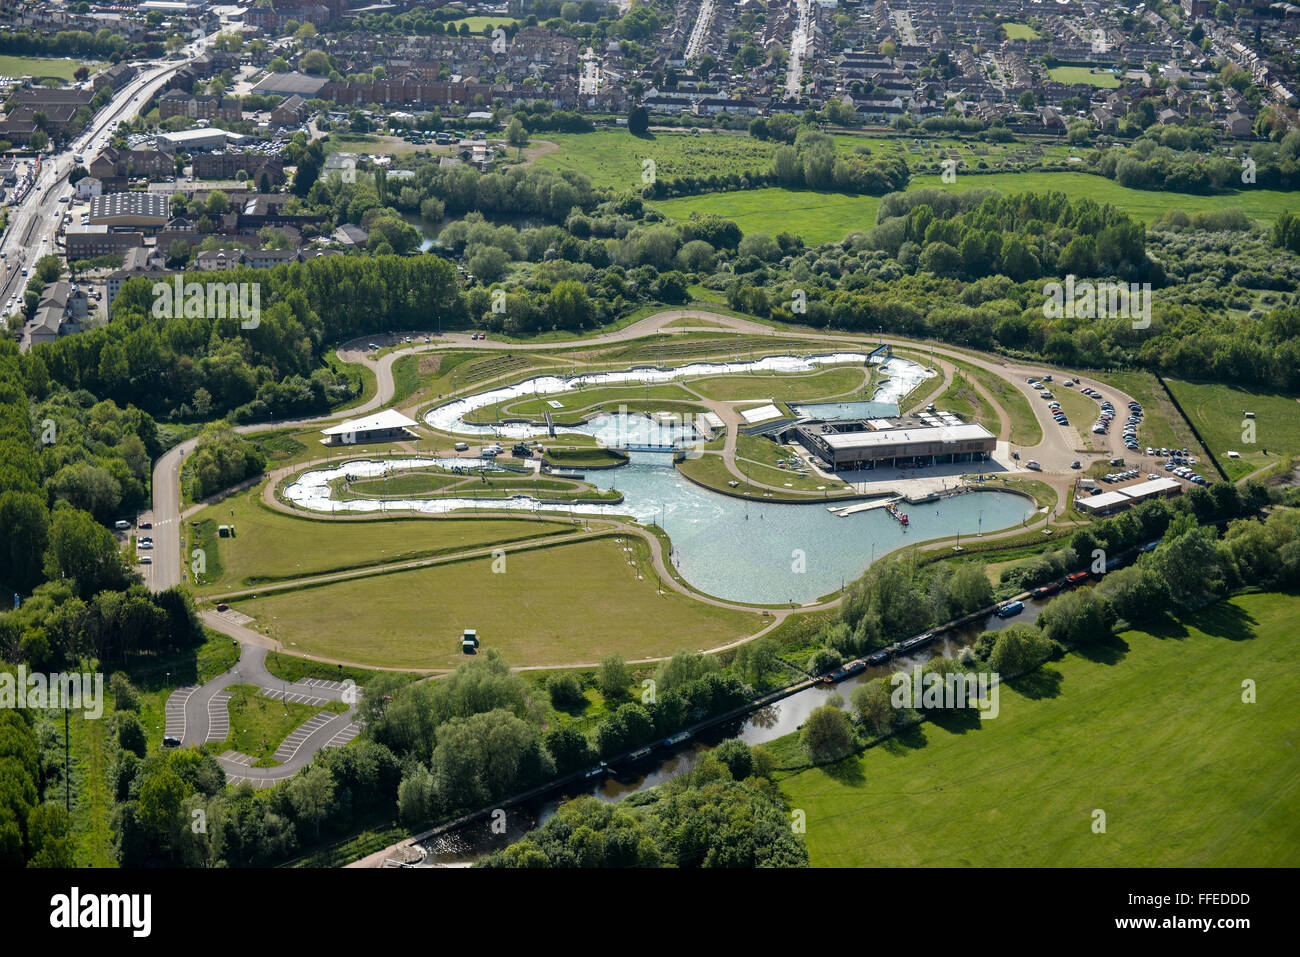 An aerial view of the Lee Valley White Water Centre, constructed for the 2012 Summer Olympics in London - Stock Image